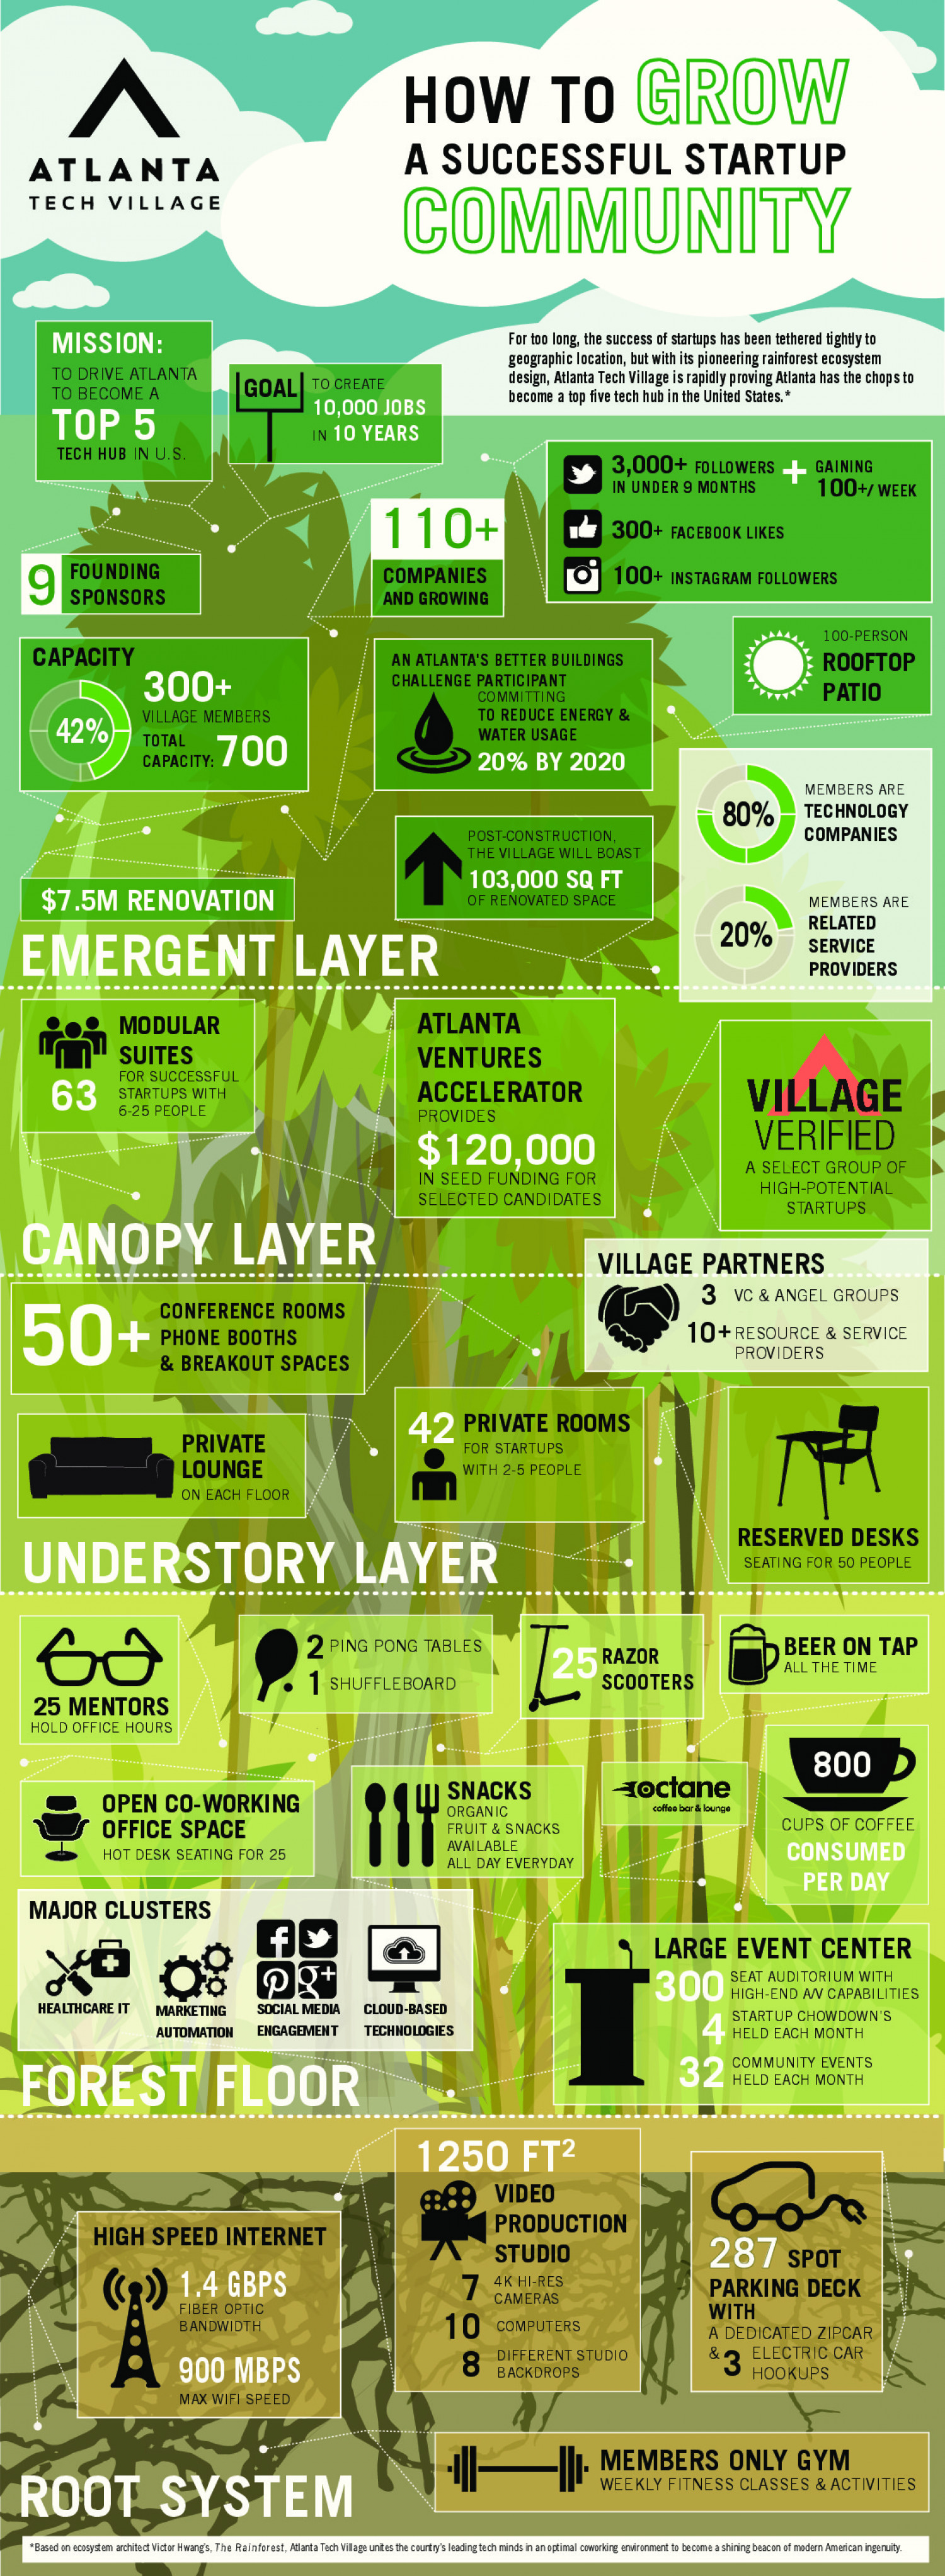 How to Grow a Successful Startup Community Infographic